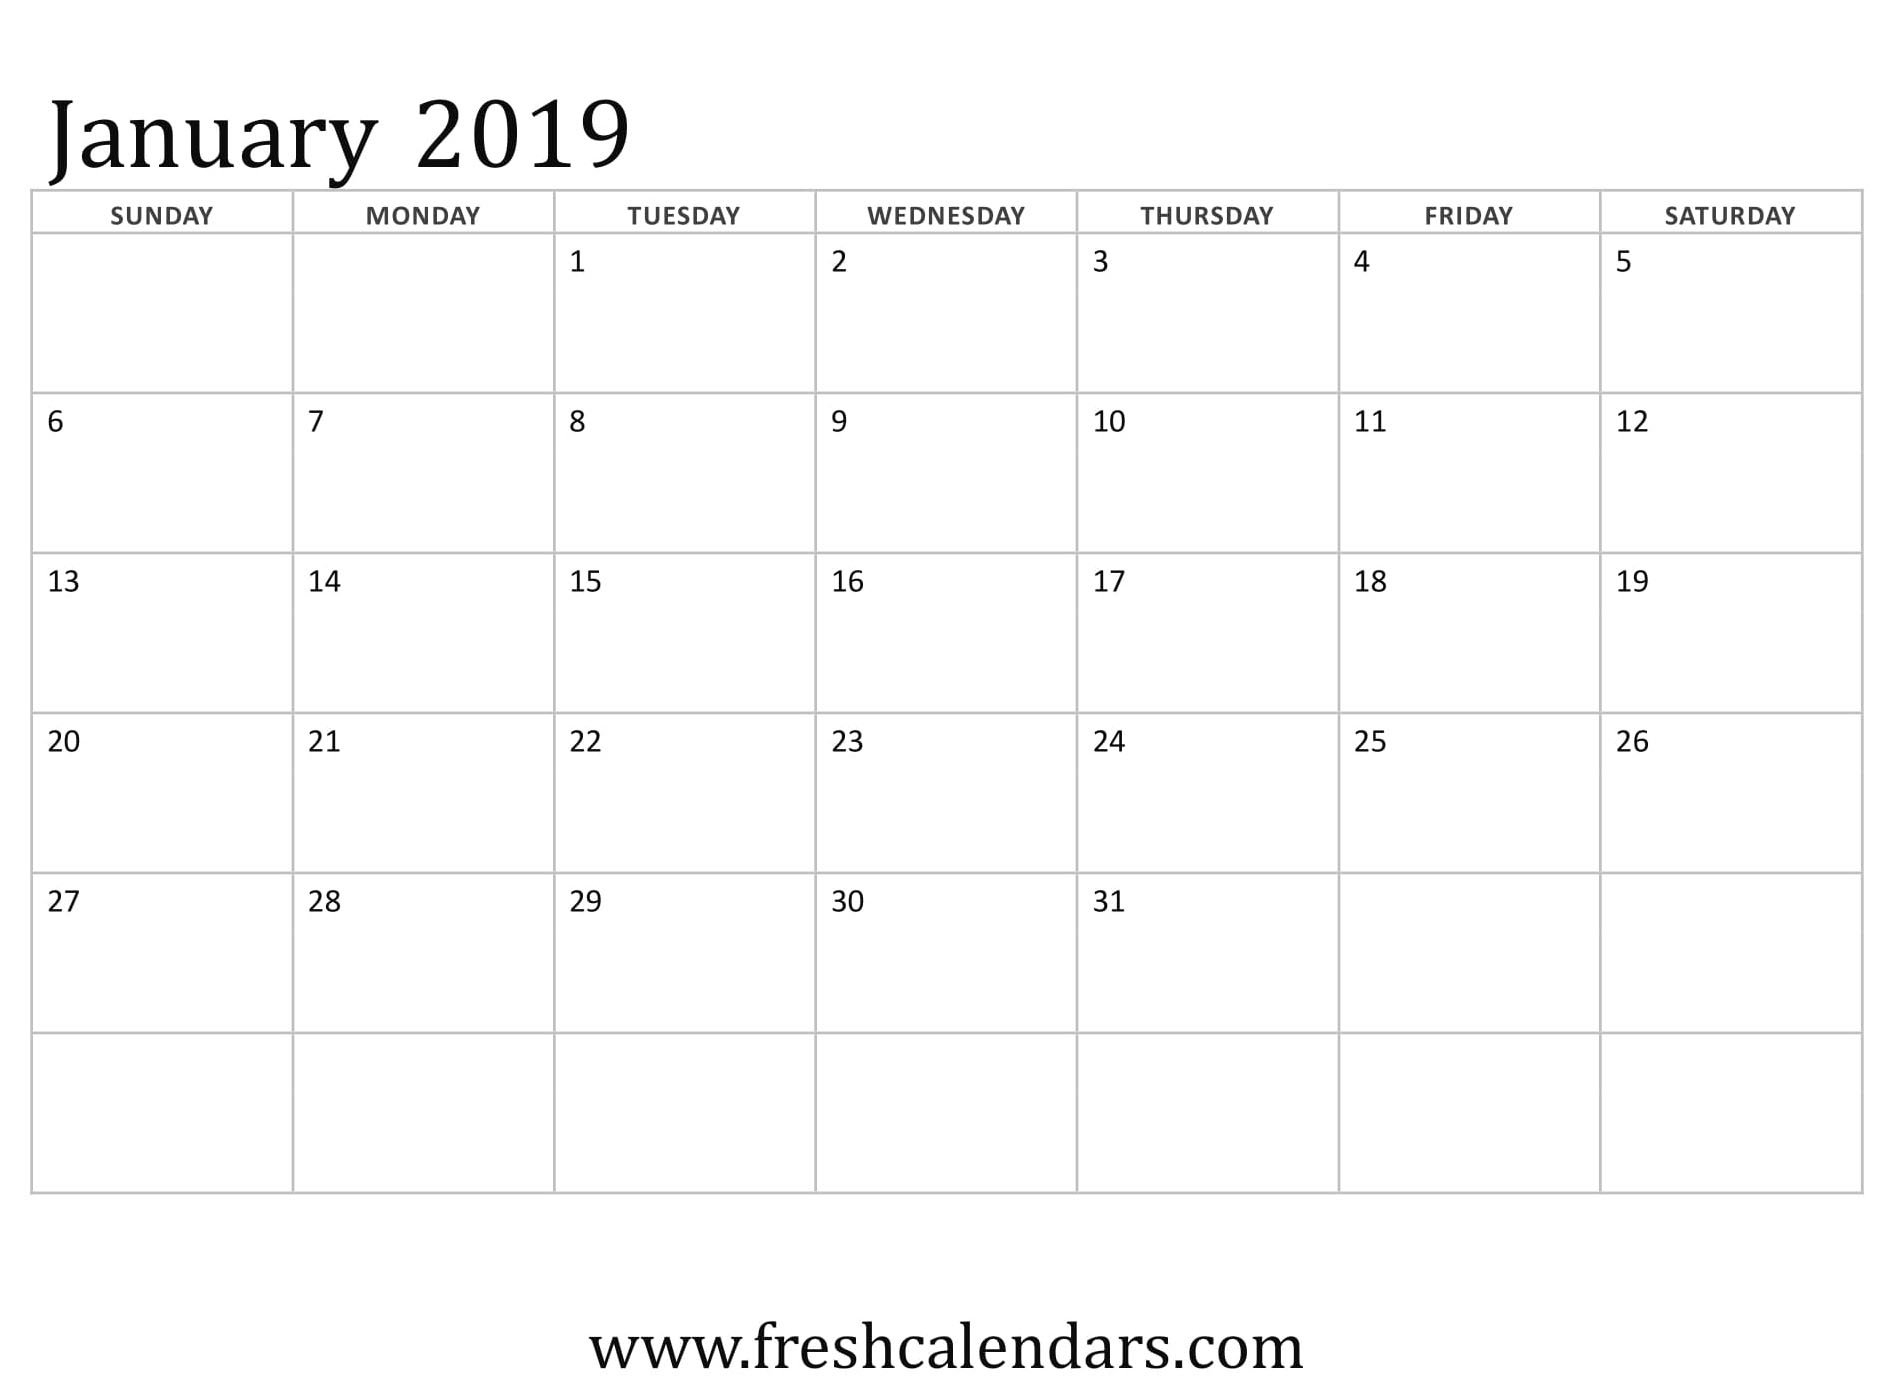 January 2019 Printable Calendars - Fresh Calendars Calendar 1/2019